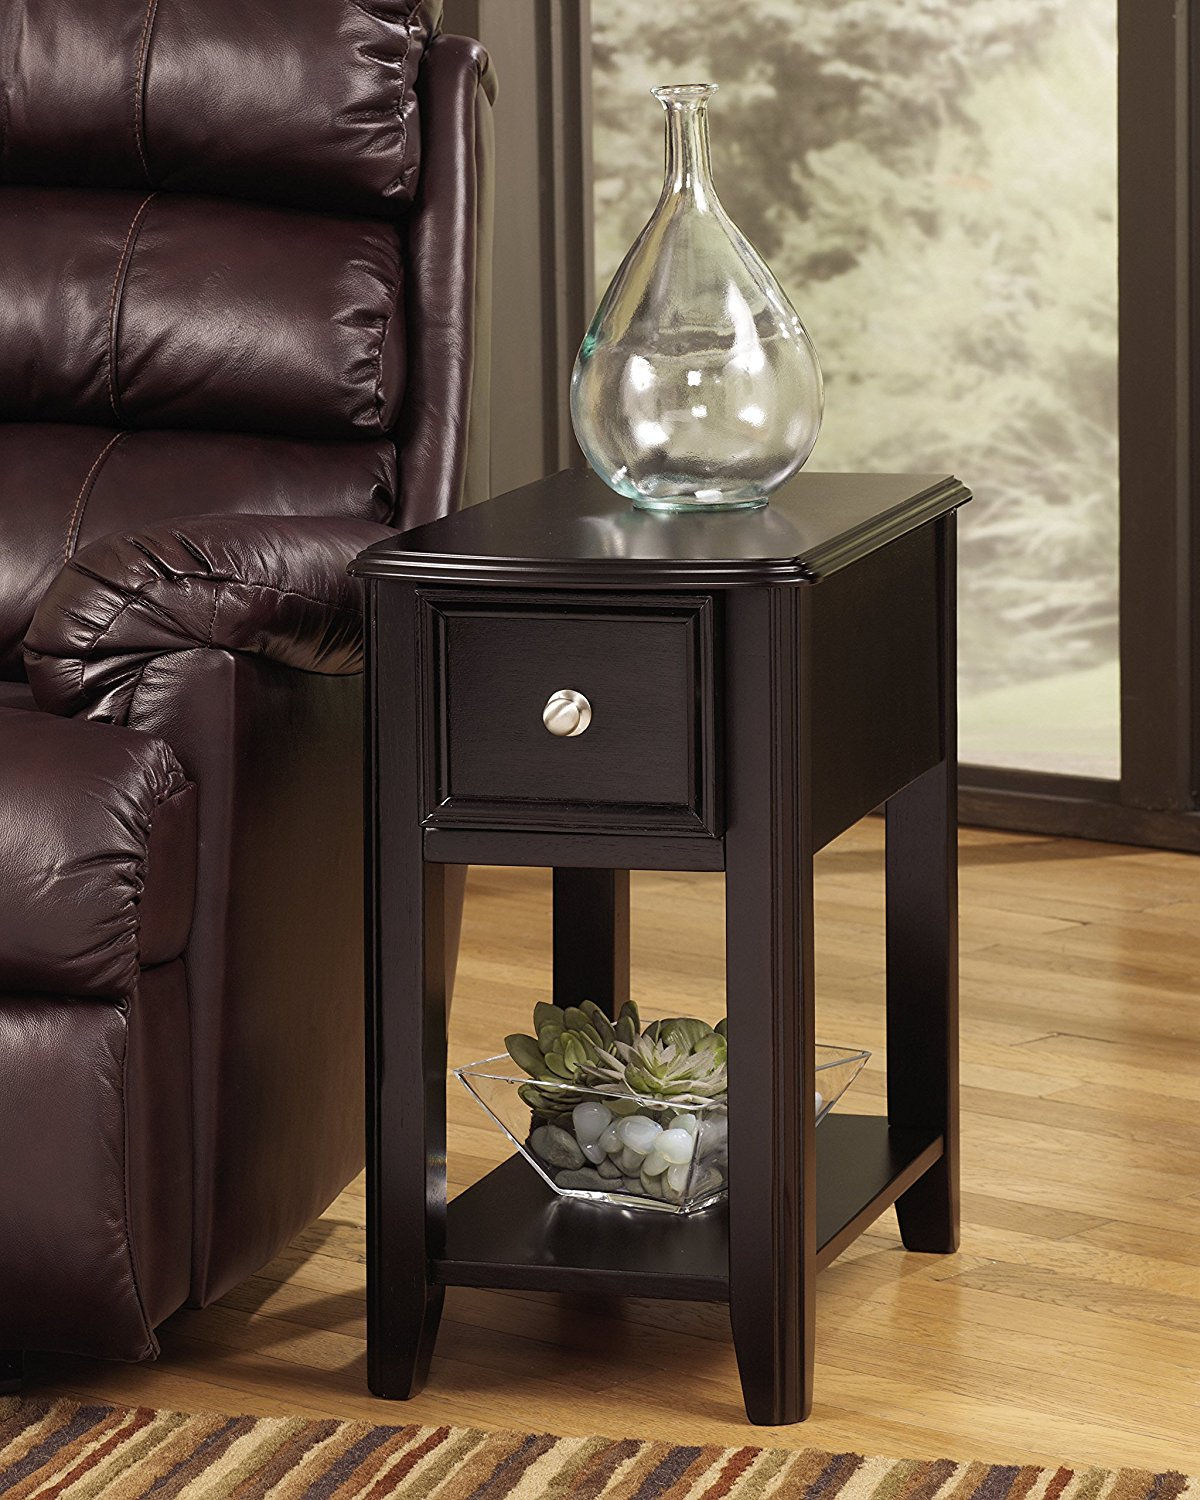 terrific small side table options for your living room ashley signature design breegin chair end dark wood accent furniture rectangular with nickel tone hardware and narrow white